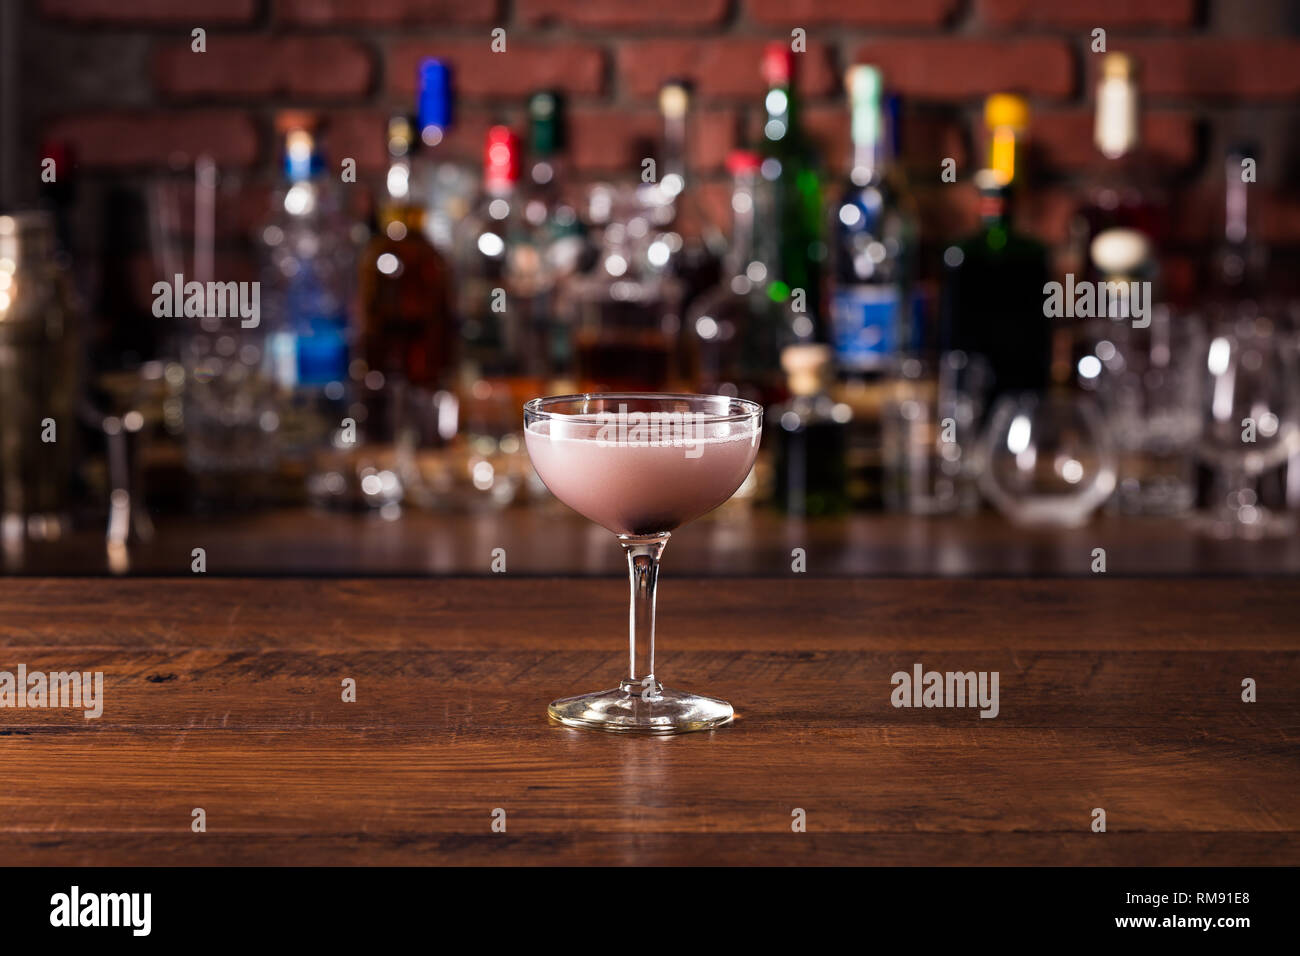 Refreshing Purple Aviation Cocktail on a Bar - Stock Image